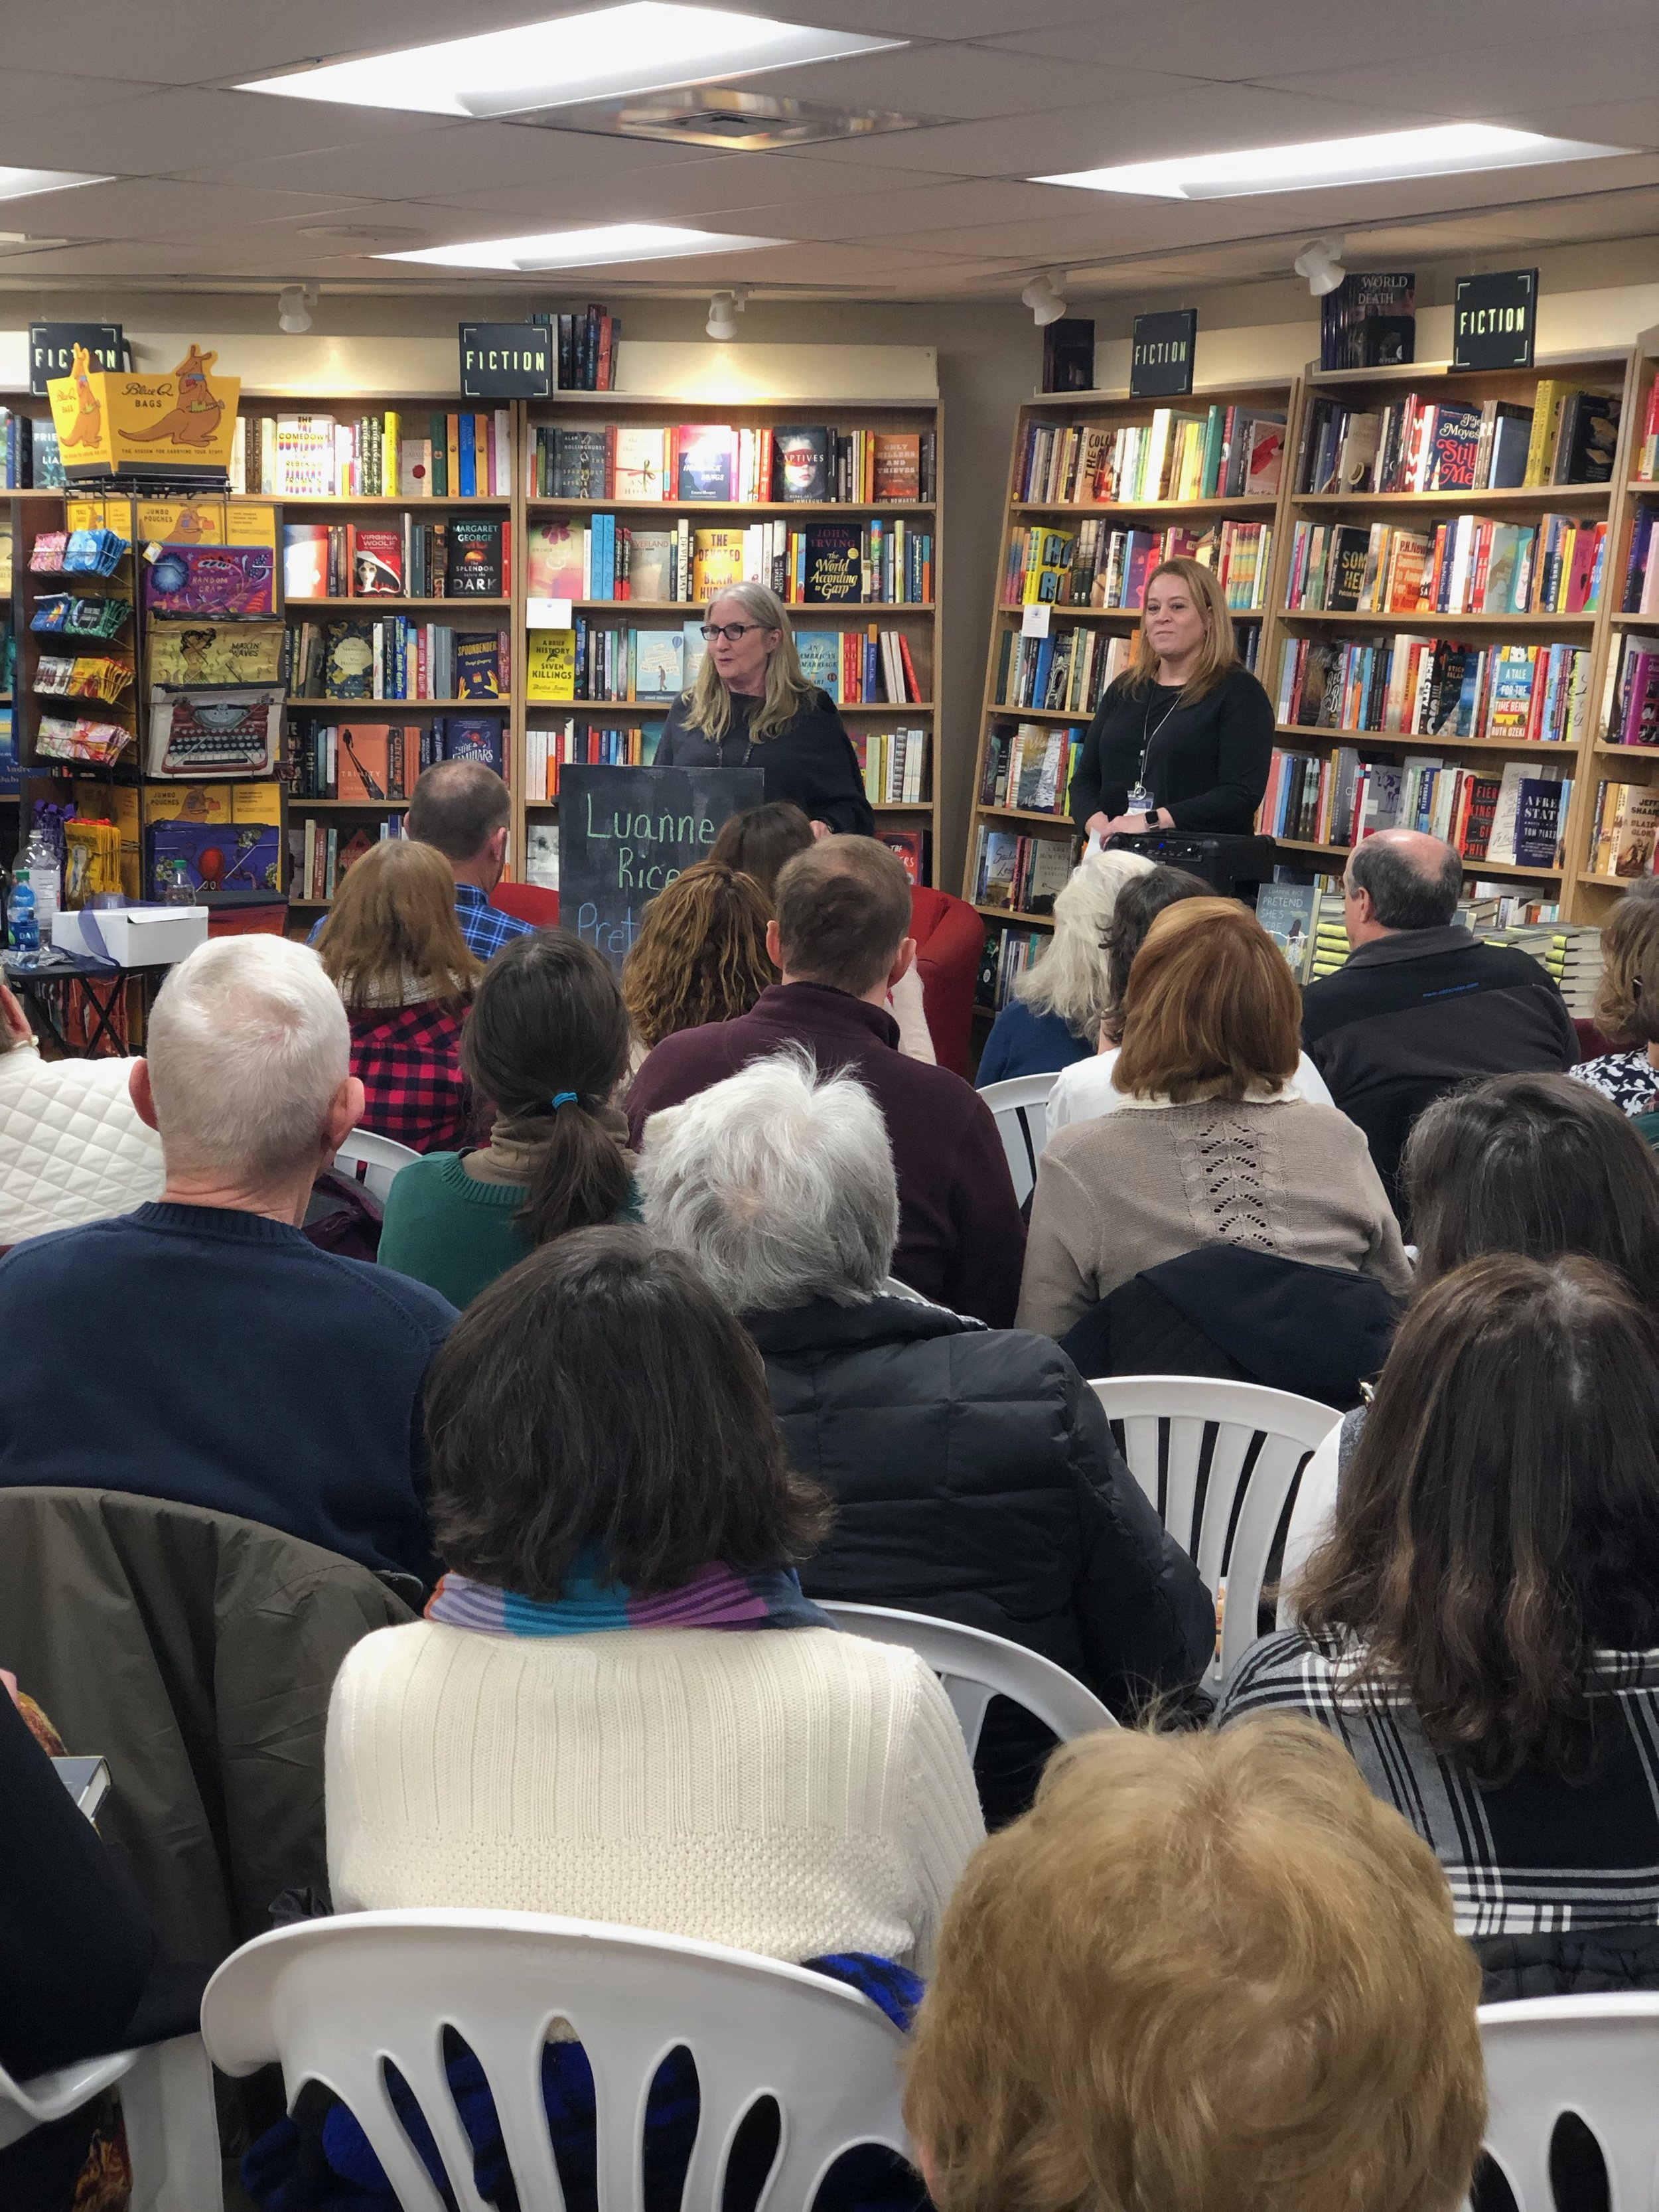 thank you to bank square books for a great night, and for lovely bookseller cathleen clifford for introducing me!